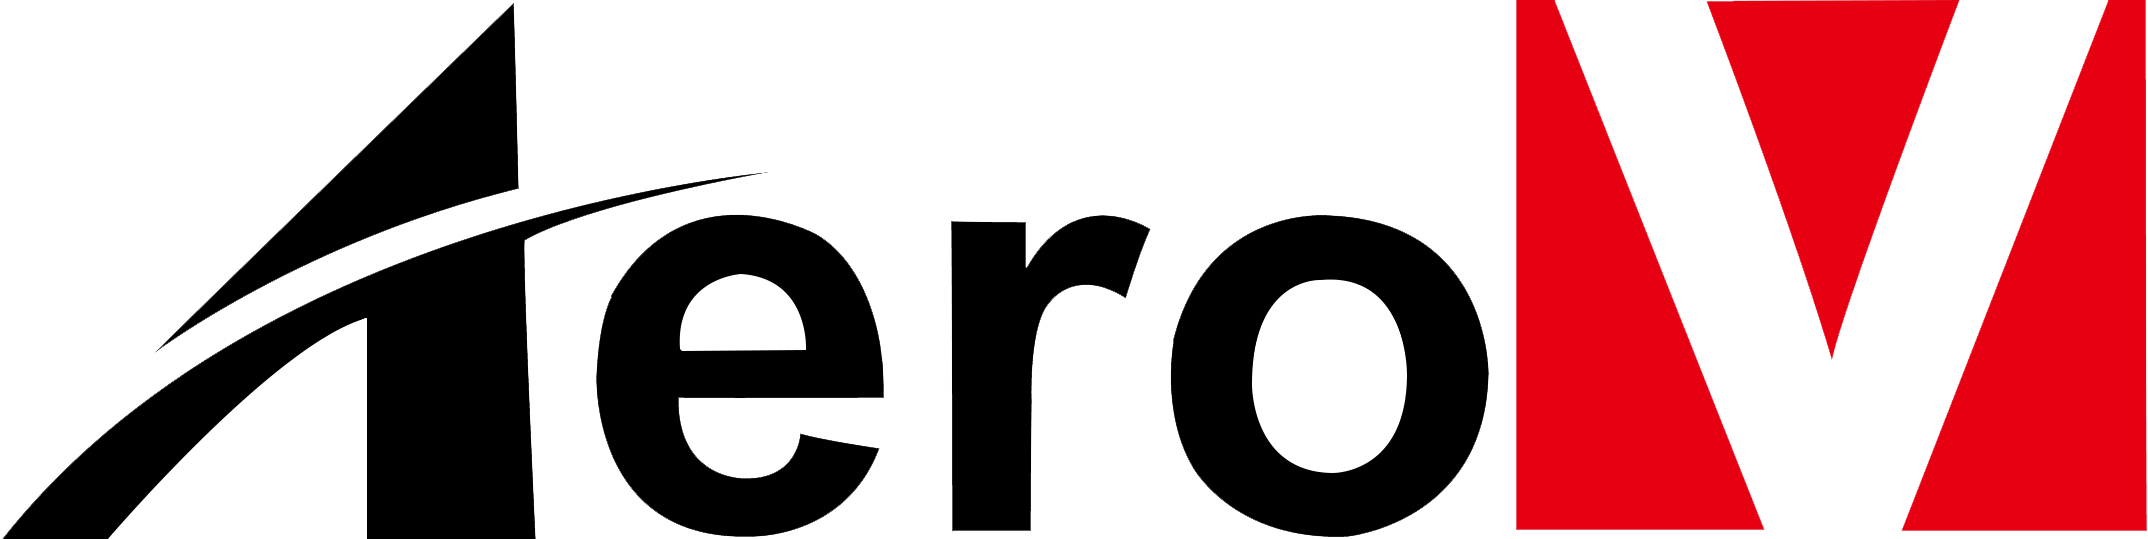 AeroV Logo (high resolution)